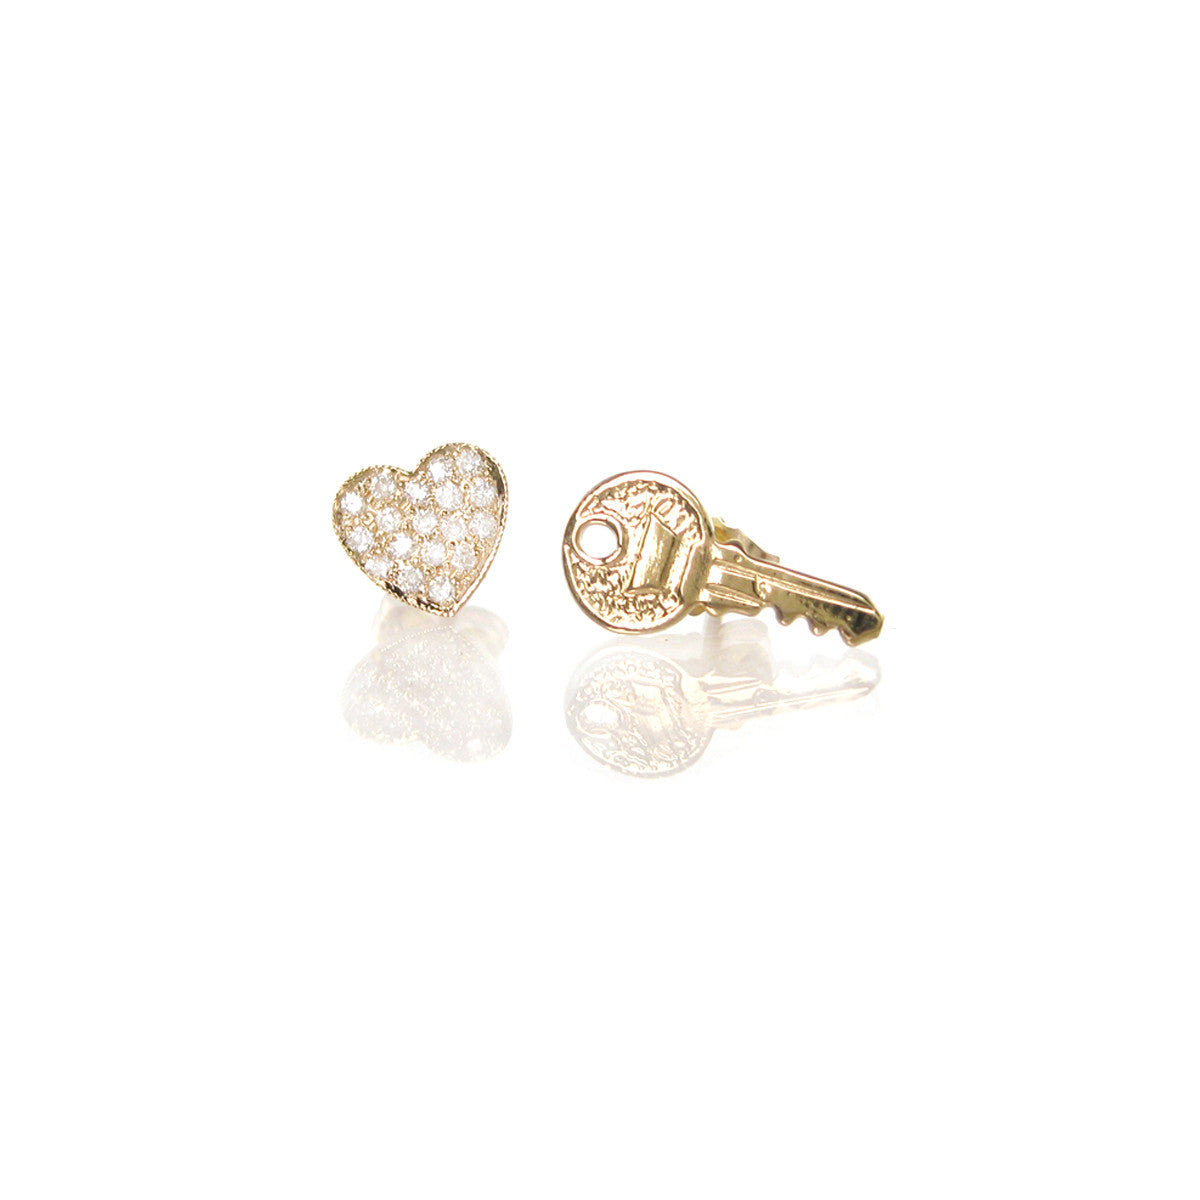 Zoë Chicco 14kt Yellow Gold Key To My Heart Stud Earrings